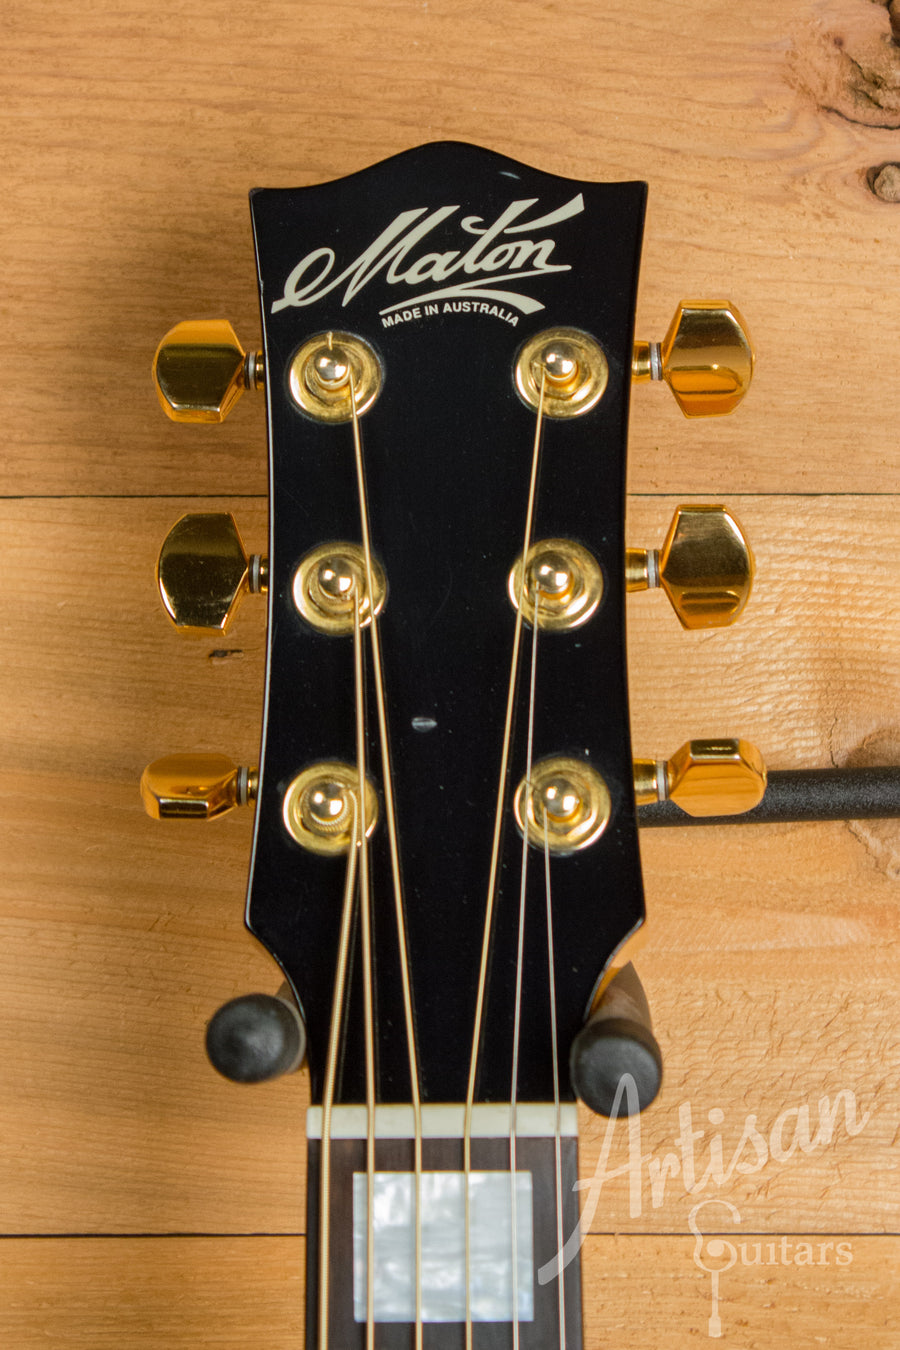 Maton ECJ85 Custom Jumbo Guitar with Sitka Spruce and Rock Maple Pre-Owned 2009 ID-11214 - Artisan Guitars